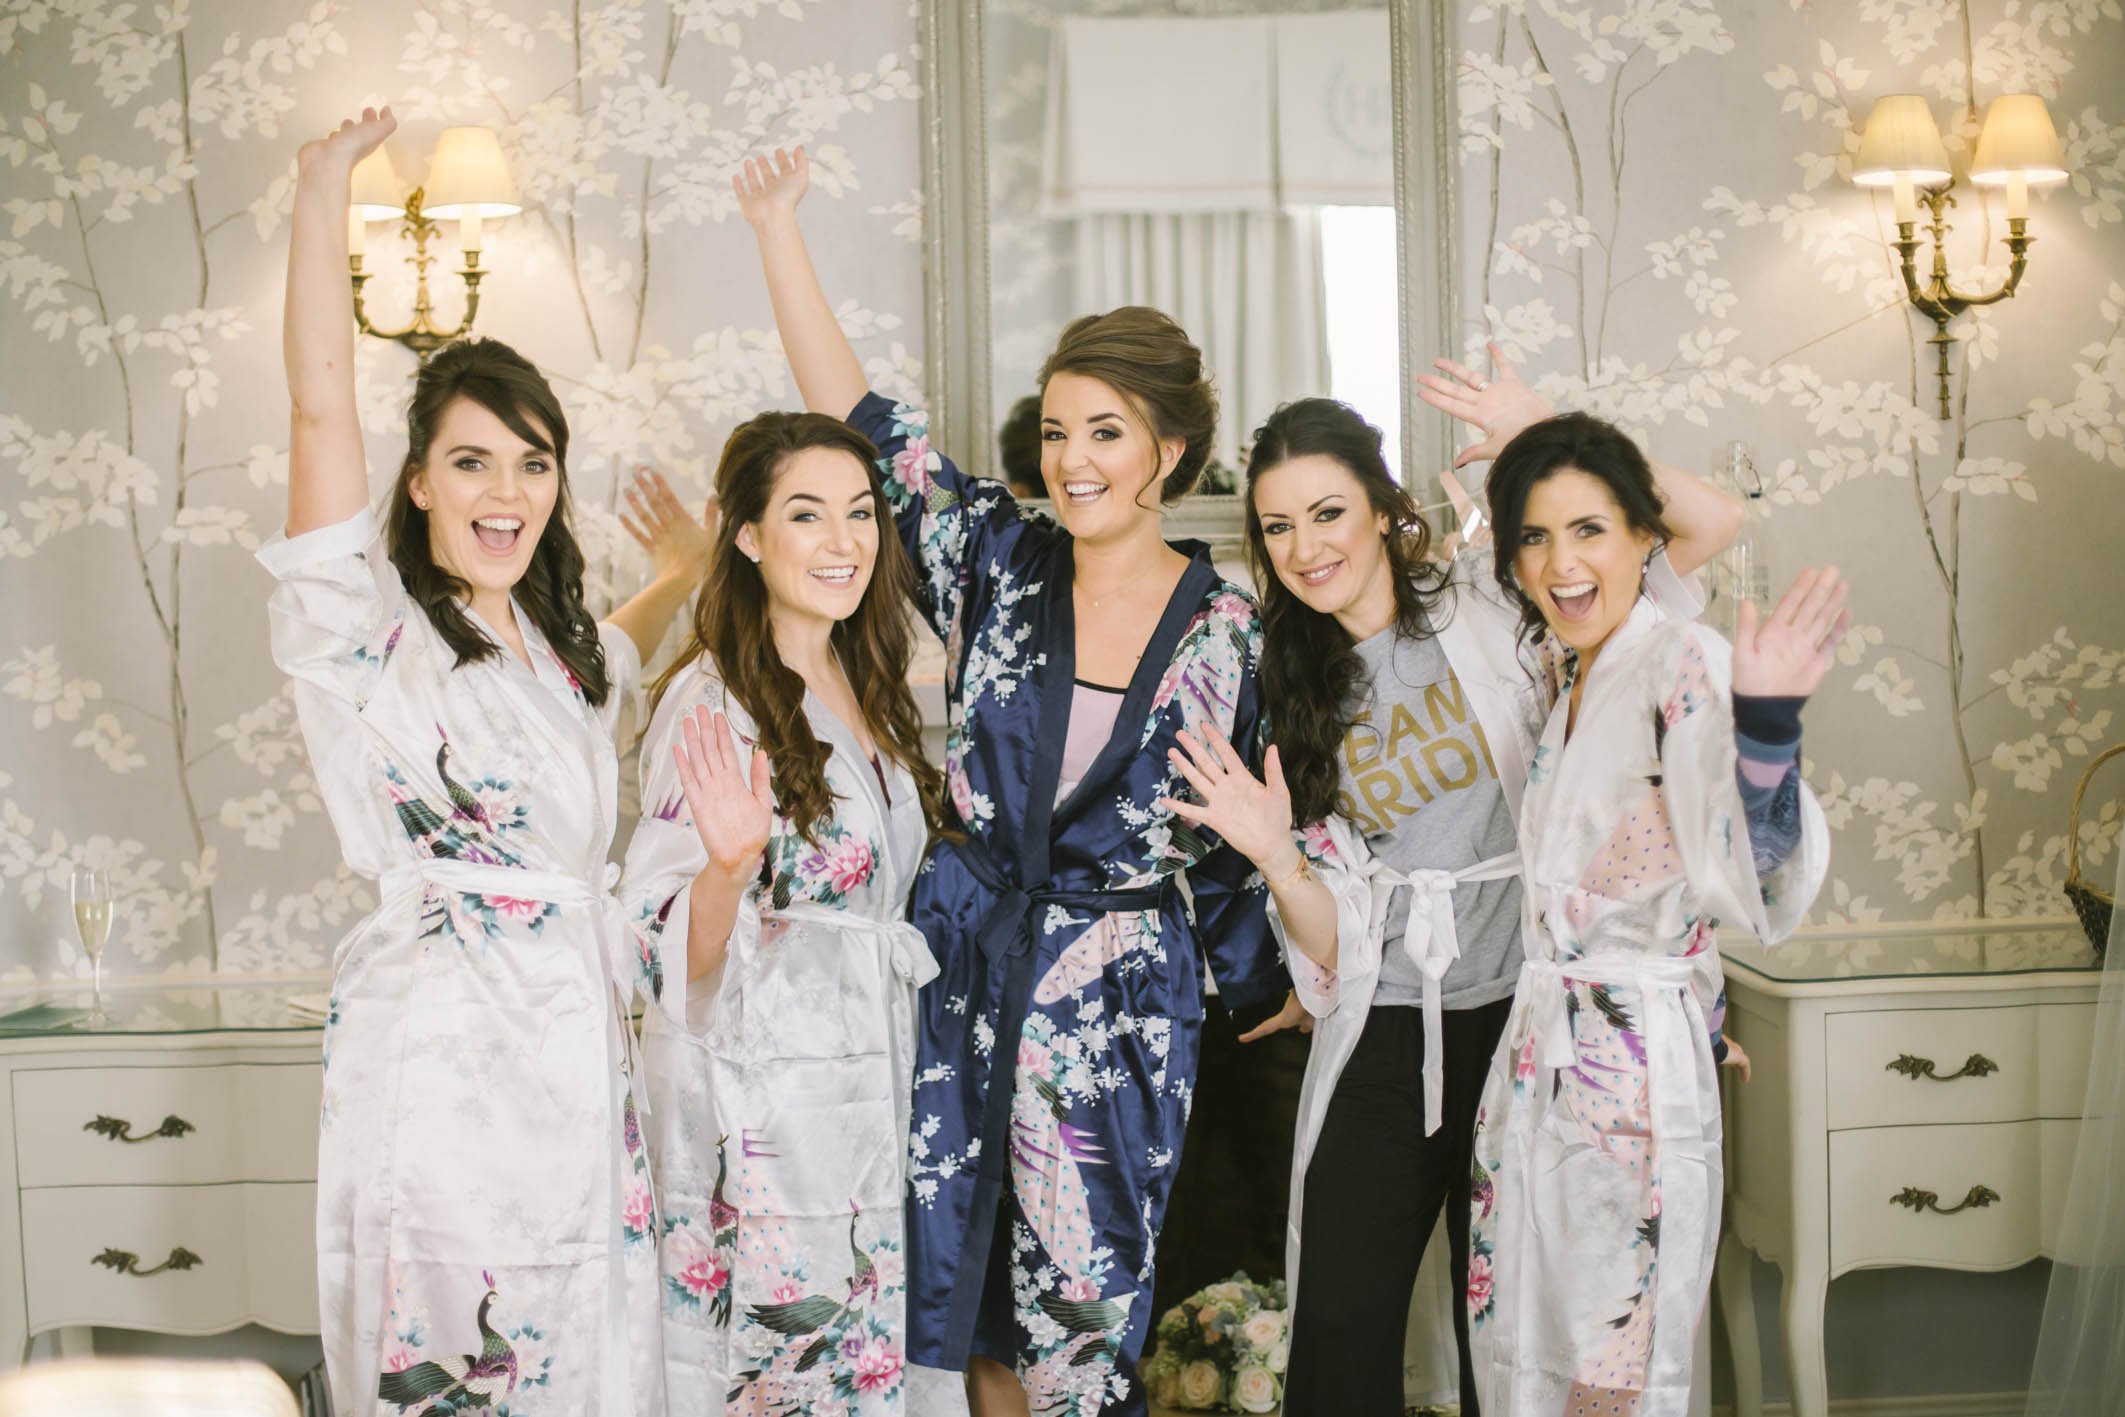 Bridesmaids and bride in matching robes | Balbirnie House Wedding Photography